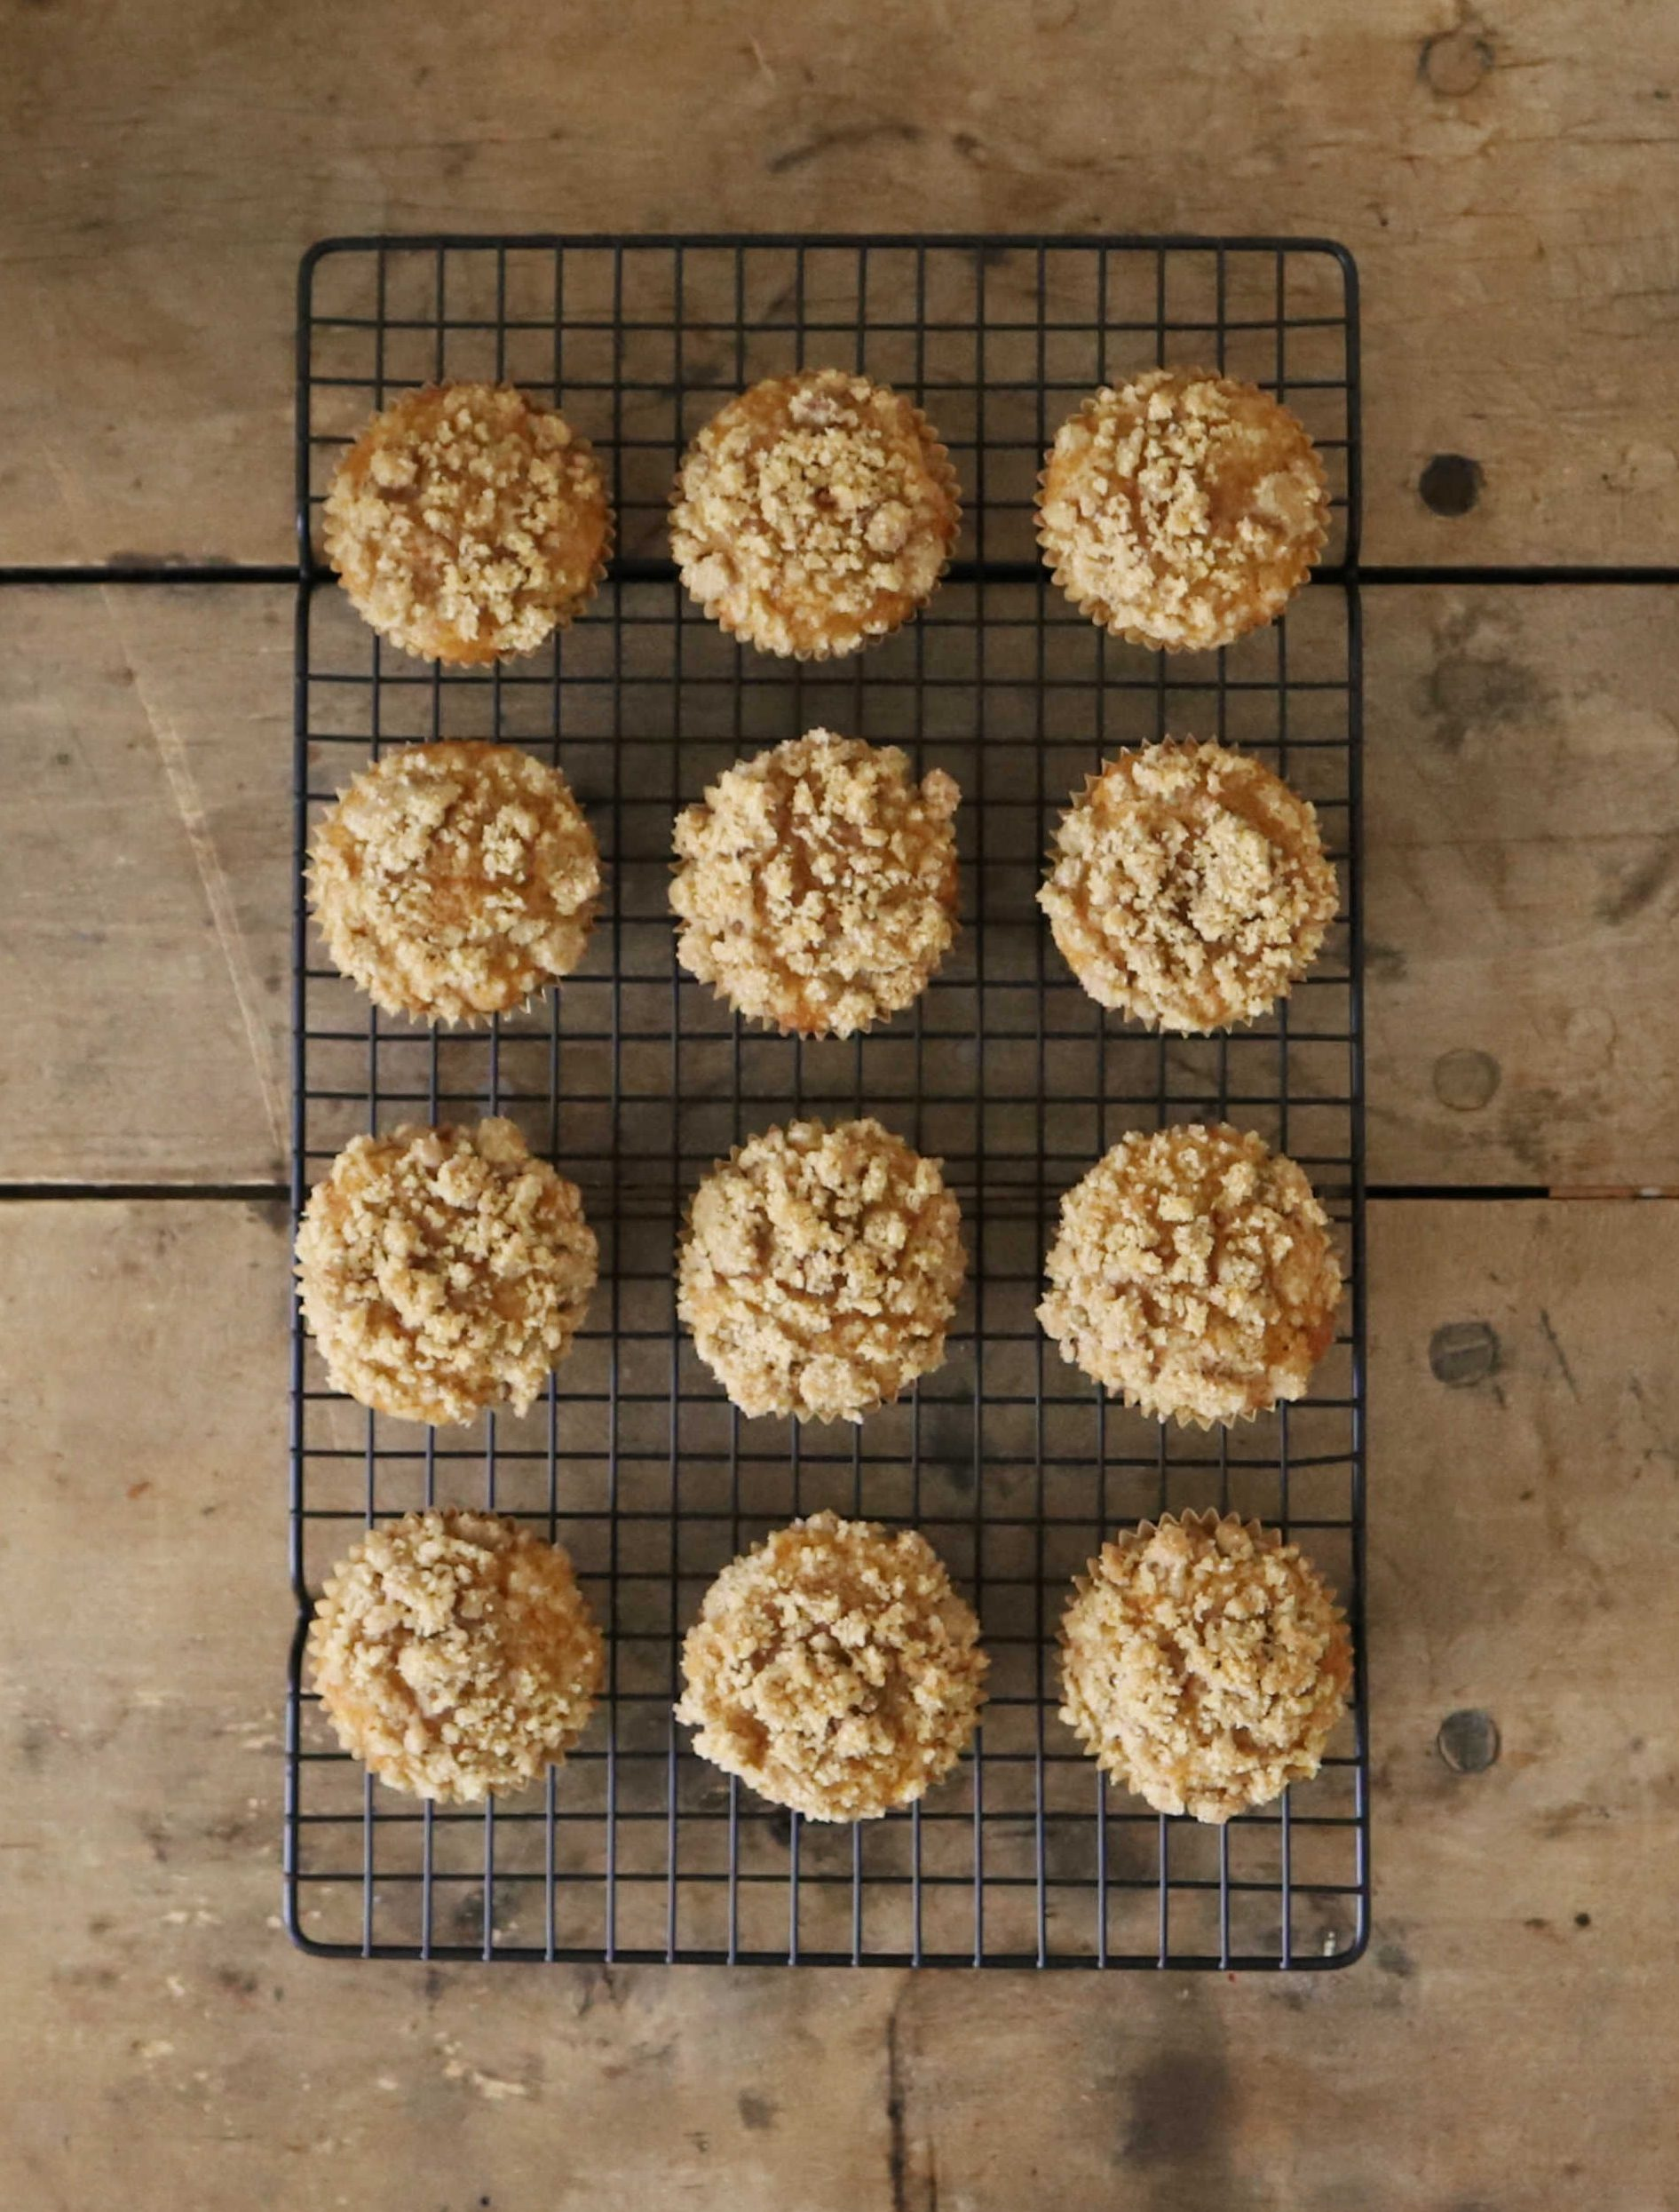 Pumpkin Spice Muffins with Cinnamon Crumble Topping